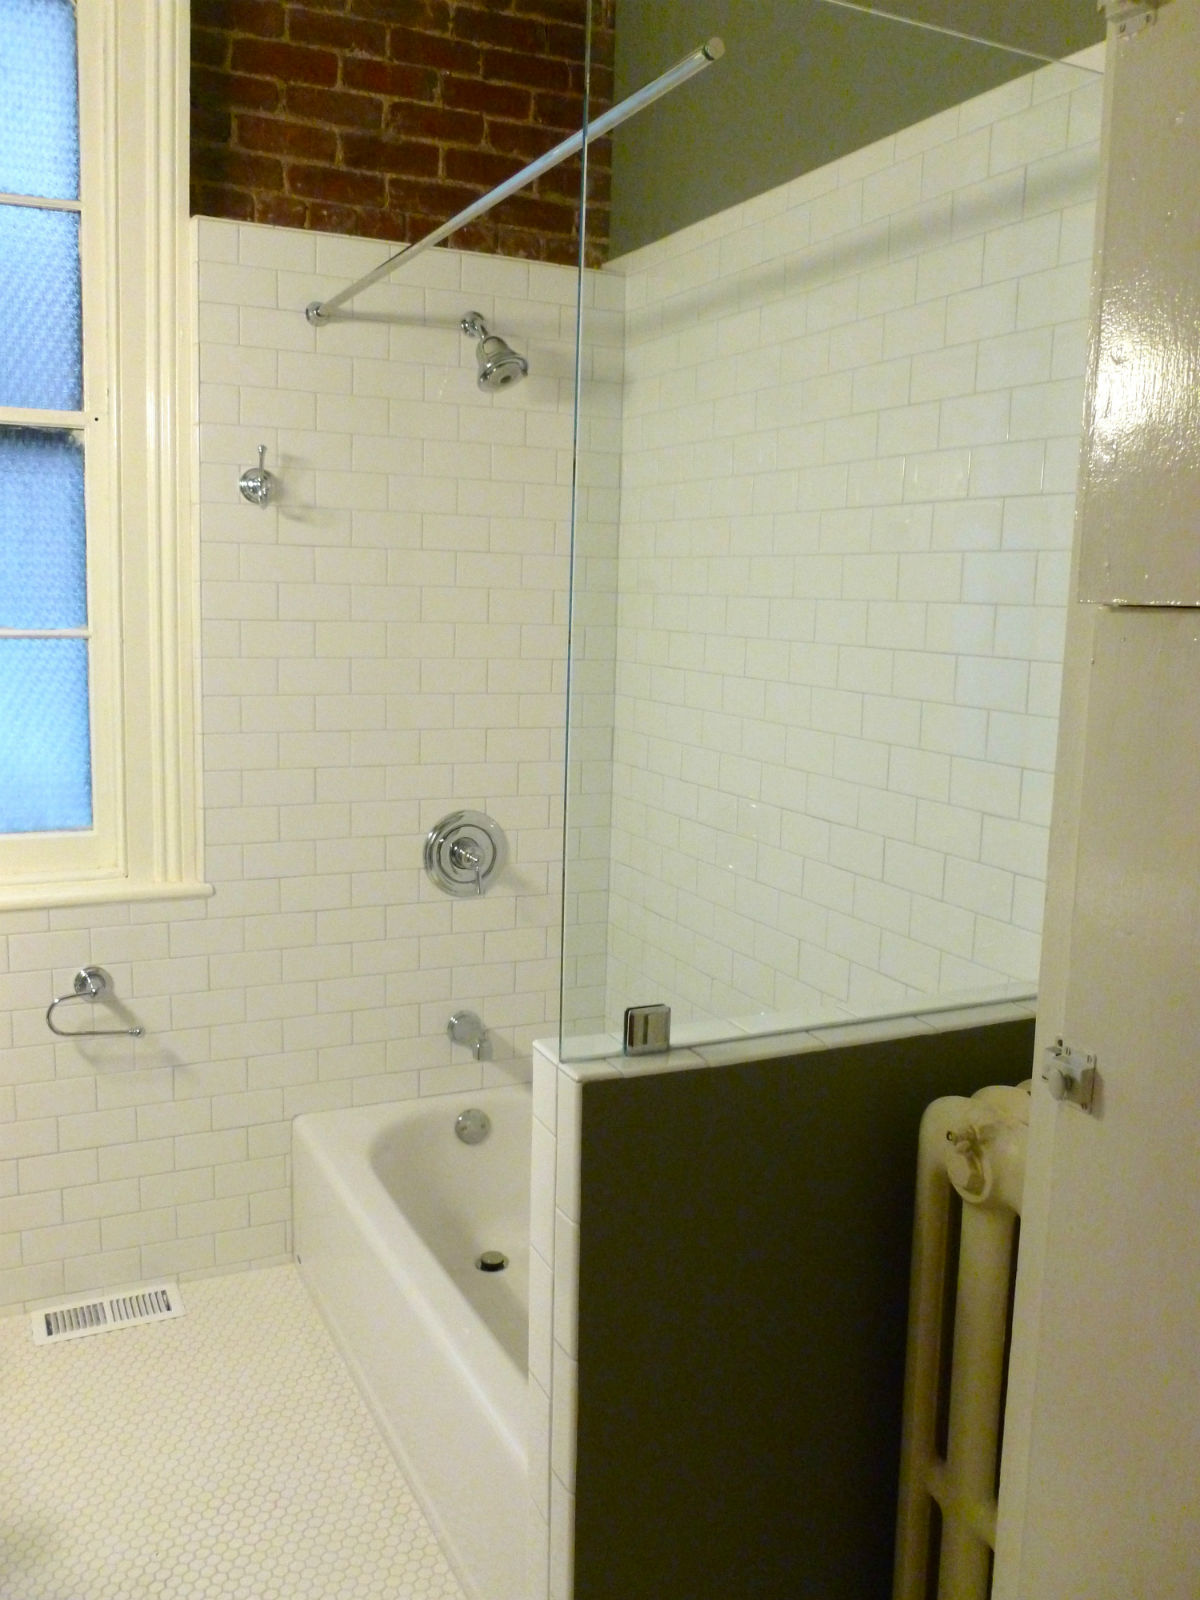 Fan District Shower Door Richmond Va Bath Tub Panel with Shower ...